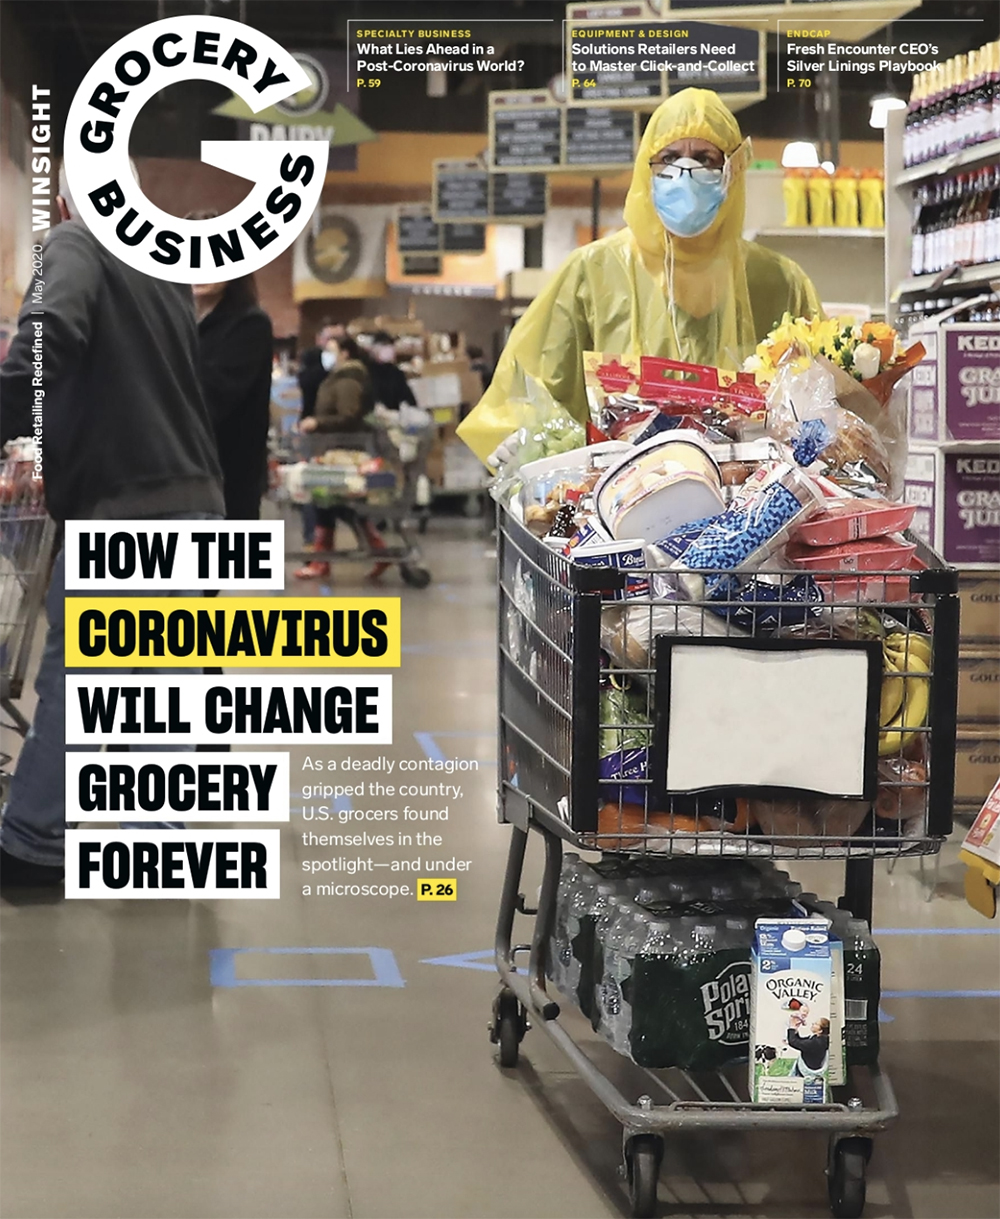 Winsight Grocery Business Magazine May 2020 Issue